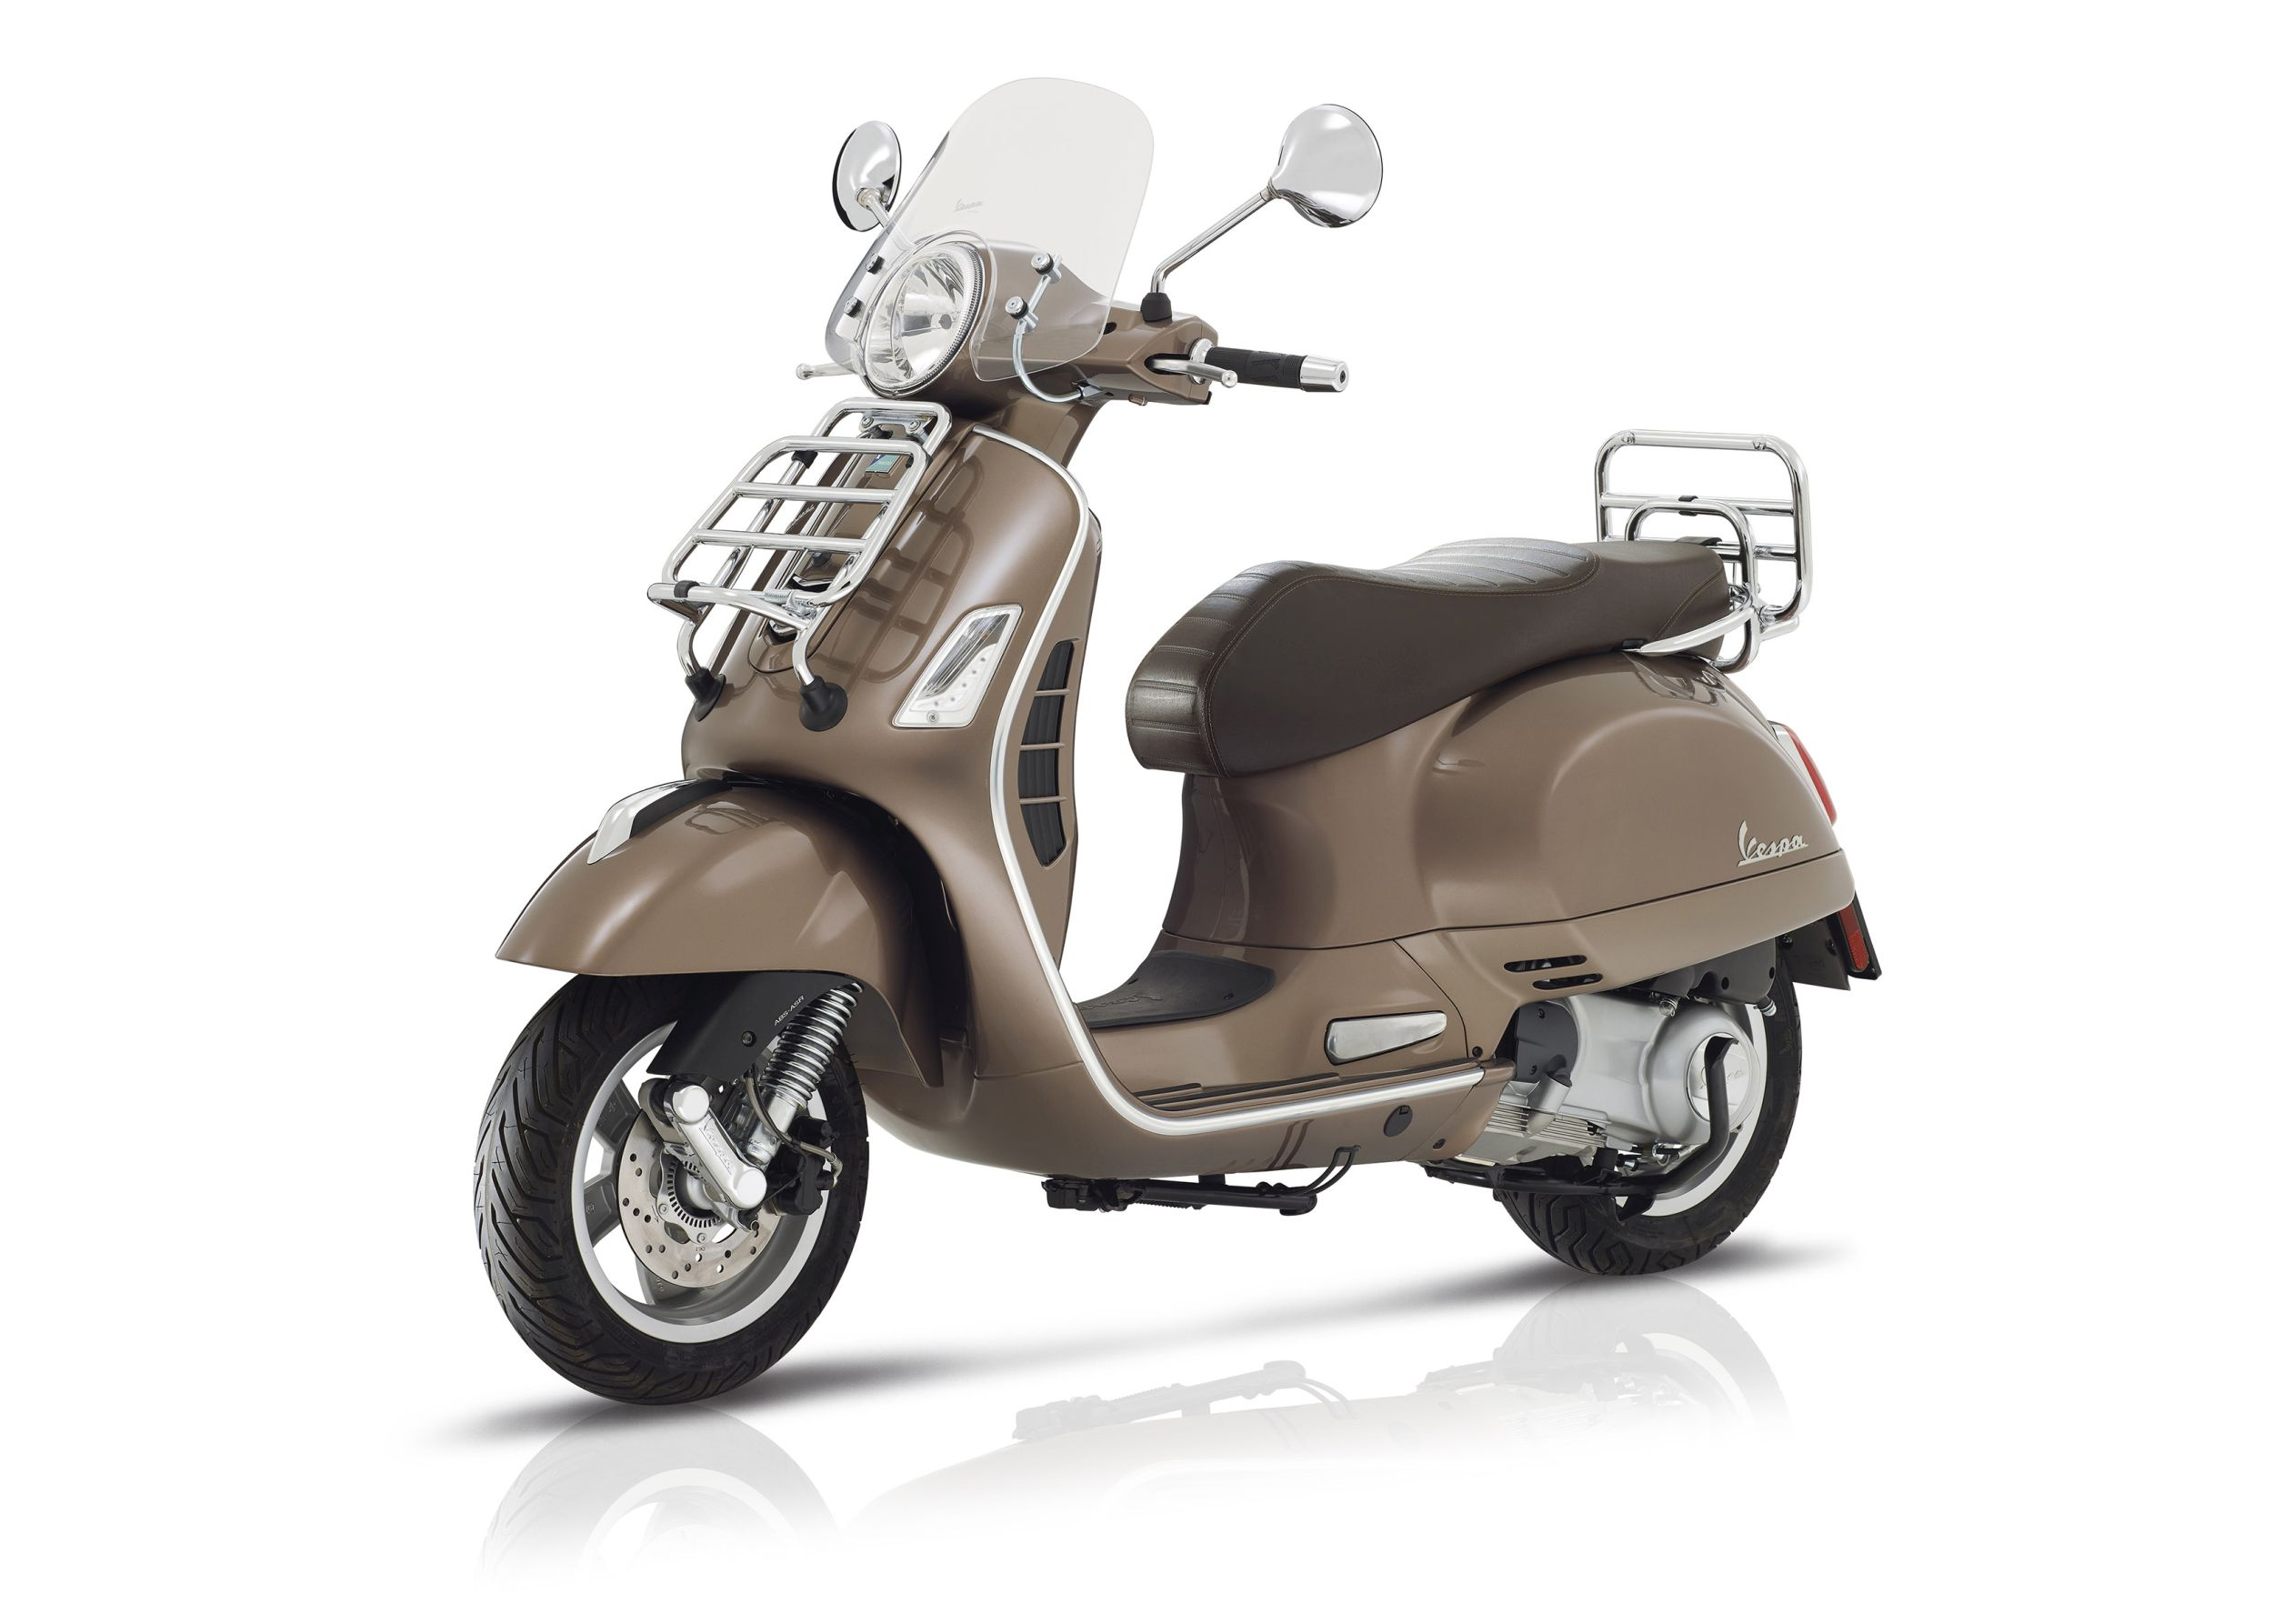 vespa gts 300 i e touring all technical data of the. Black Bedroom Furniture Sets. Home Design Ideas